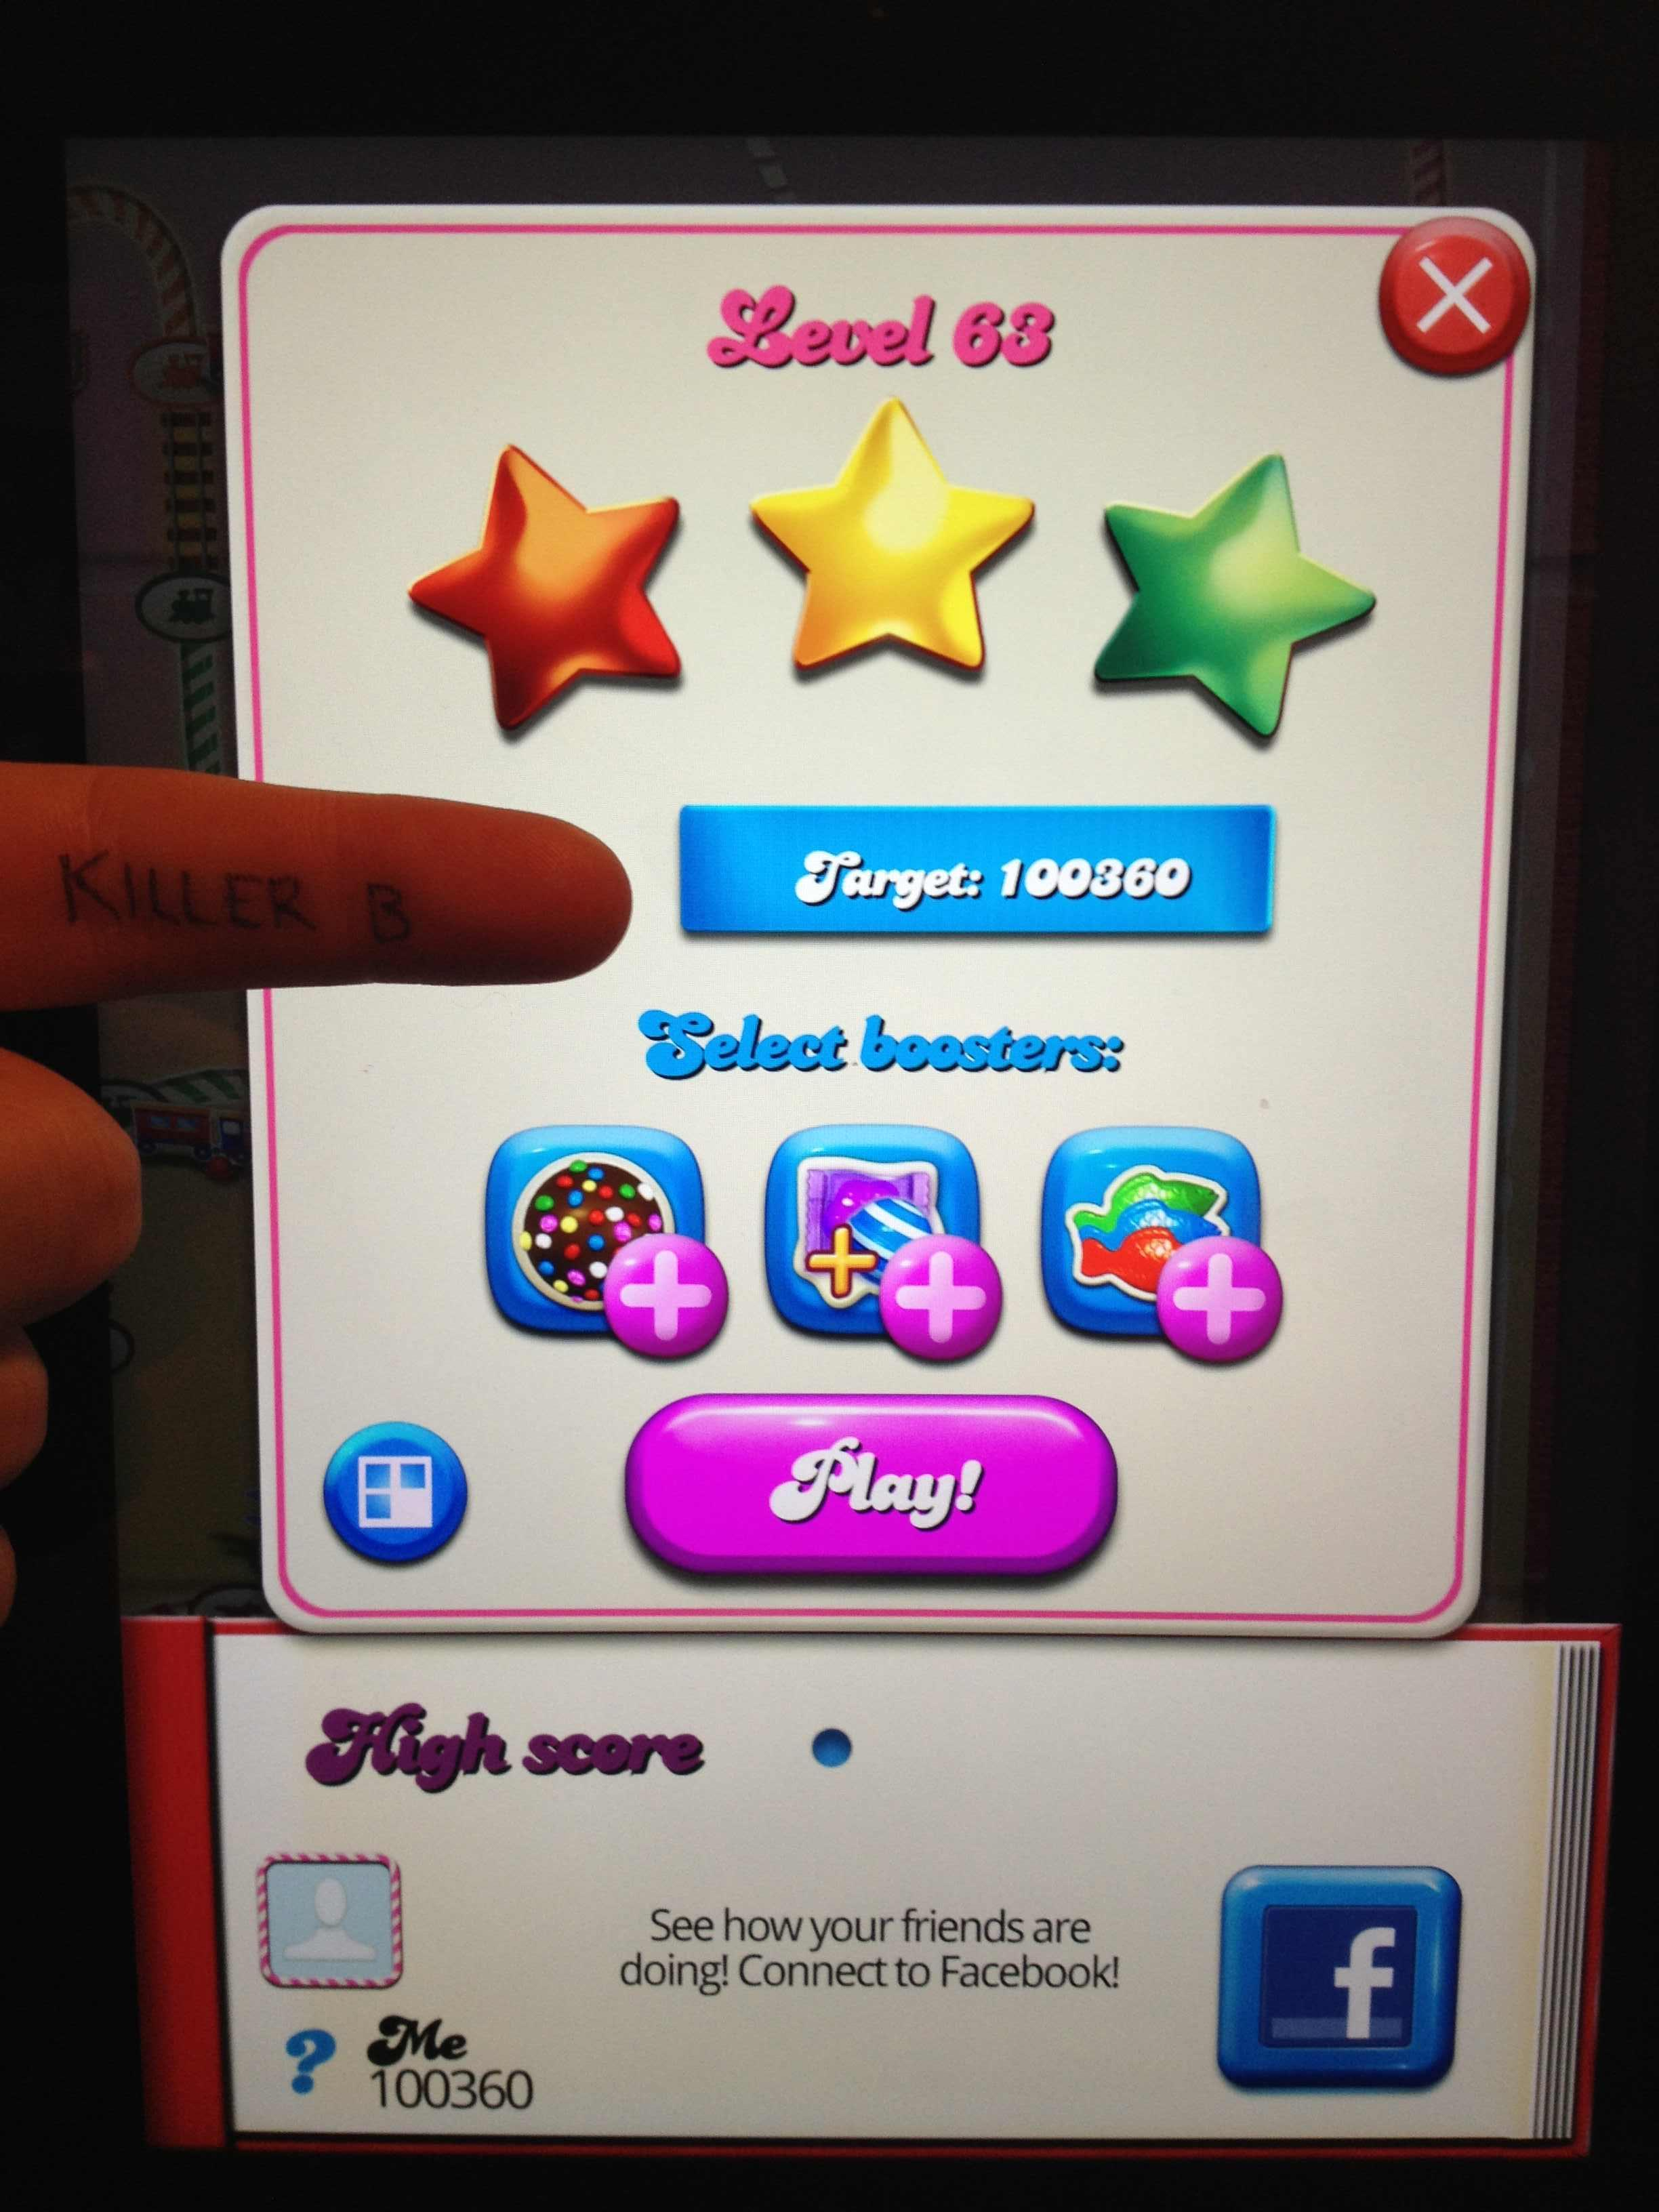 Candy Crush Saga: Level 063 100,360 points